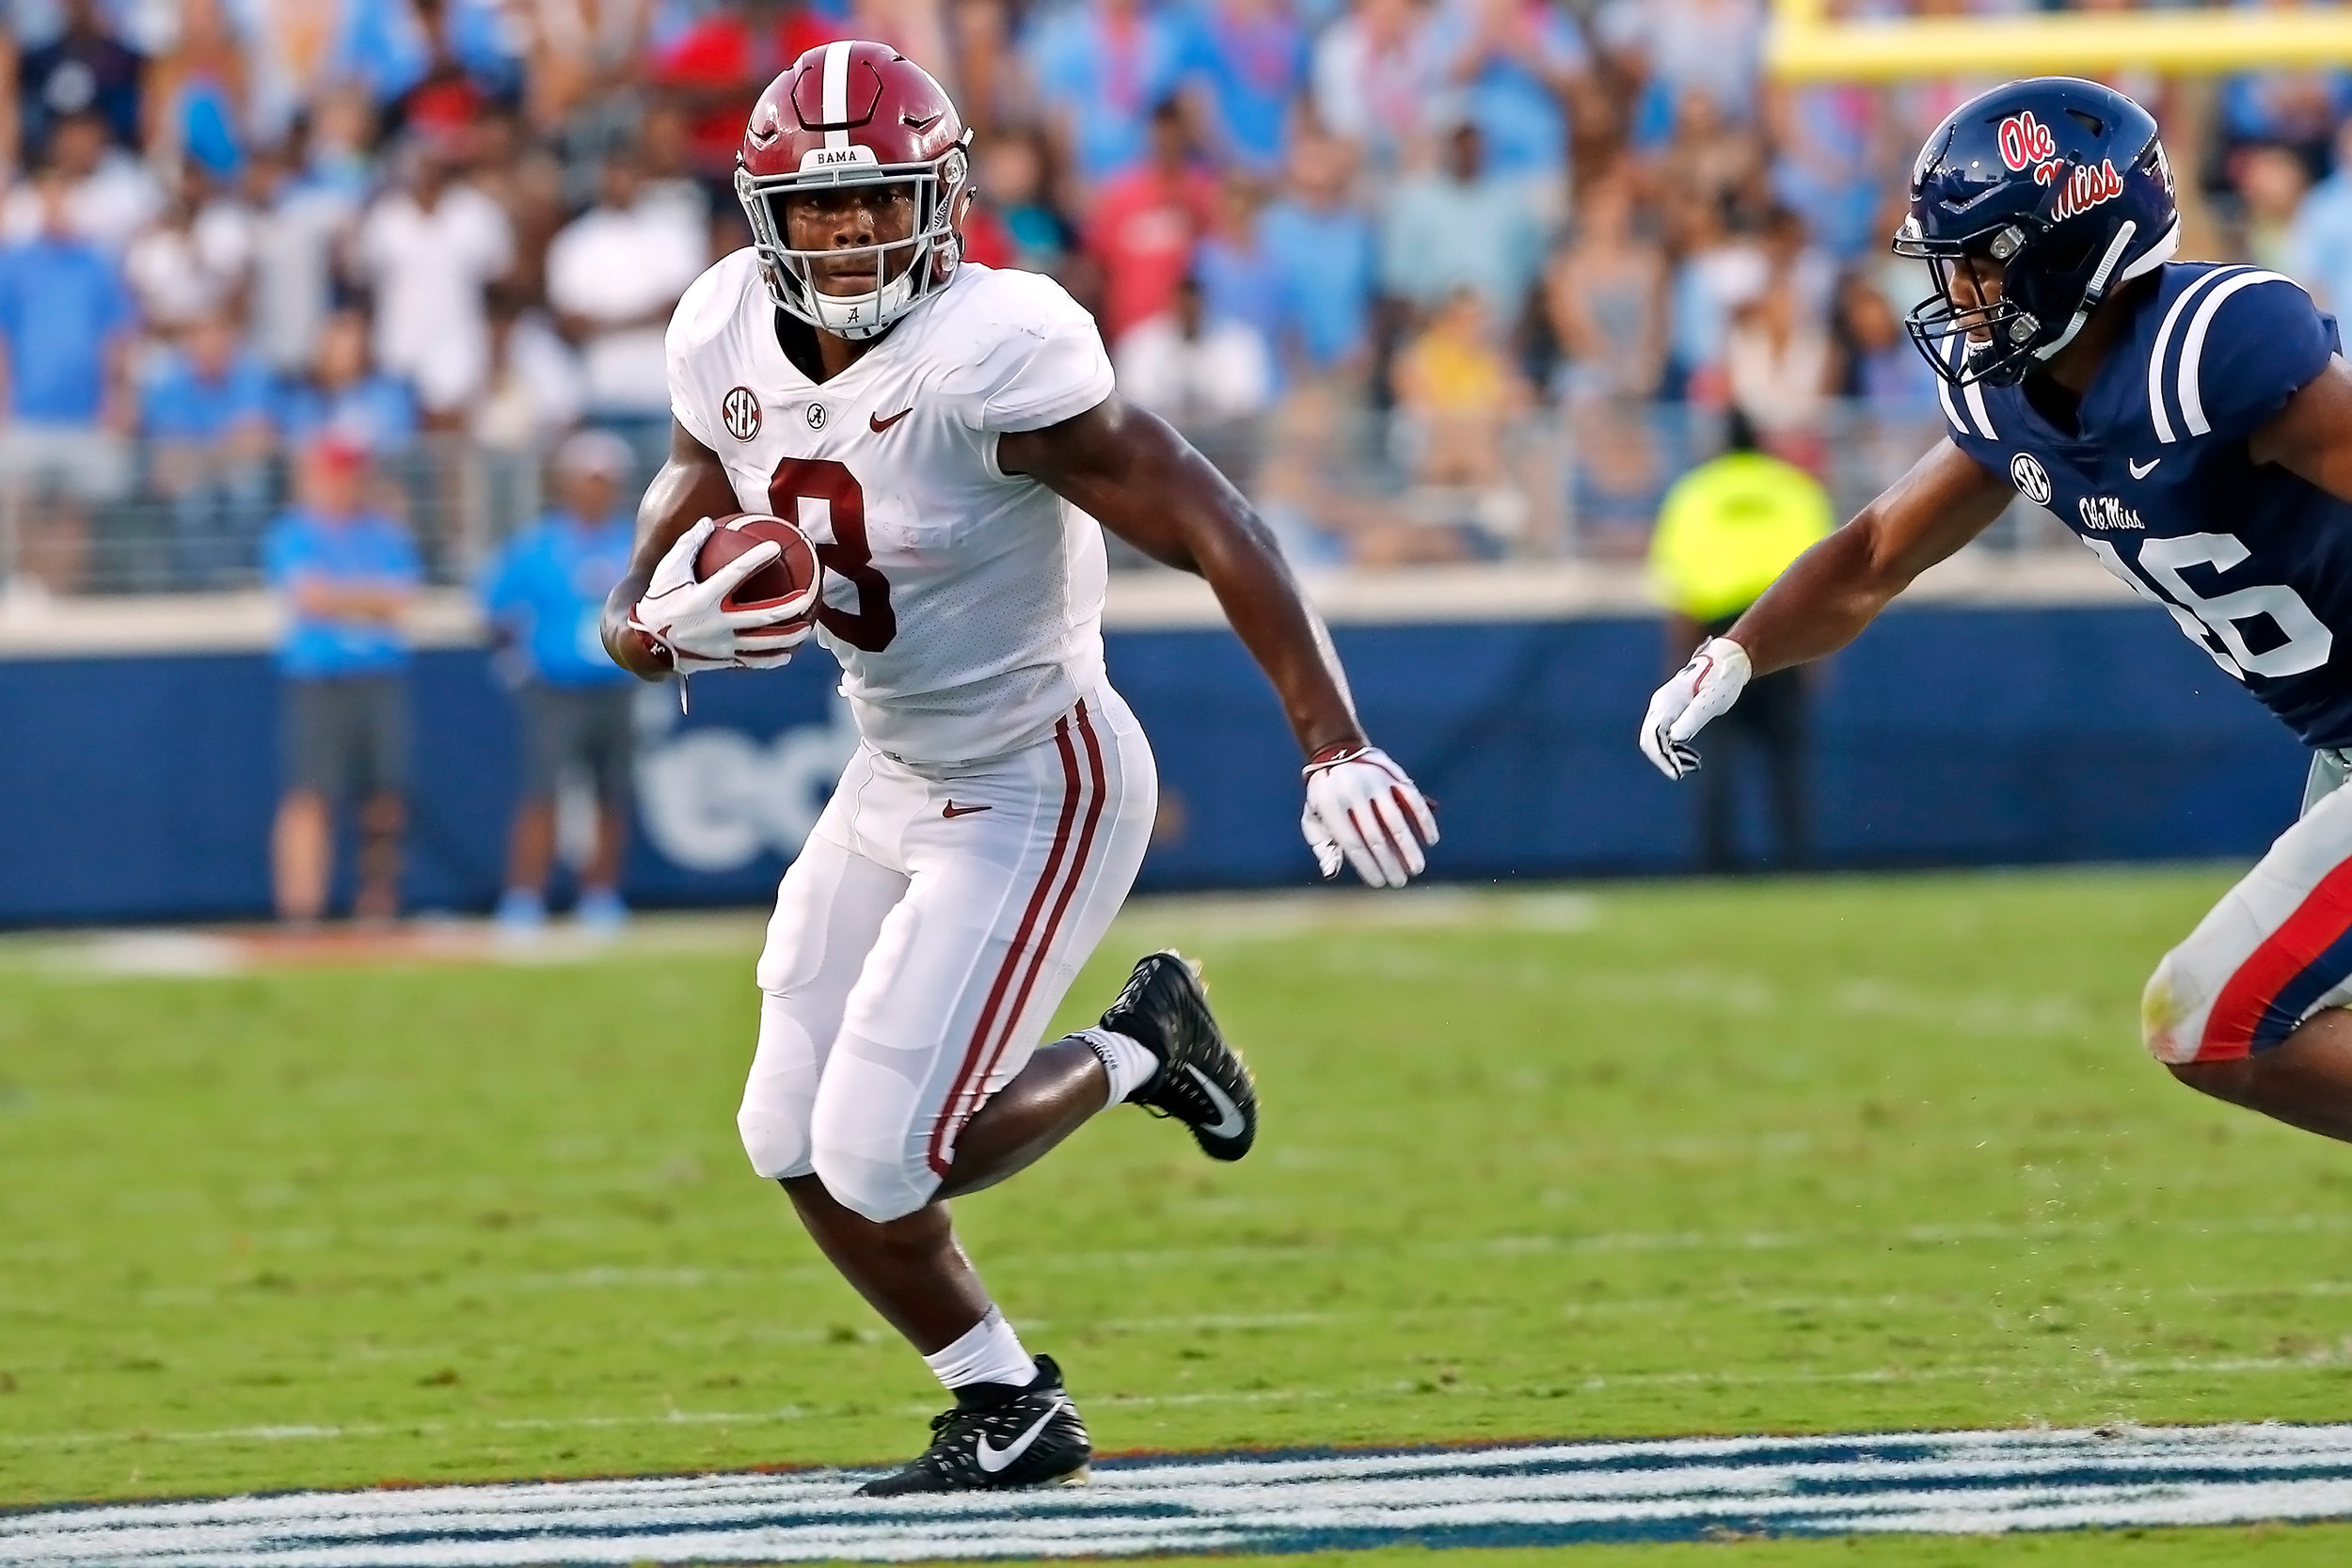 Alabama Crimson Tide running back Josh Jacobs (8) rushes for a large gain during the game between the University of Alabama and Ole Miss at Vaught-Hemingway Stadium. Jason Clark / Daily Mountain Eagle